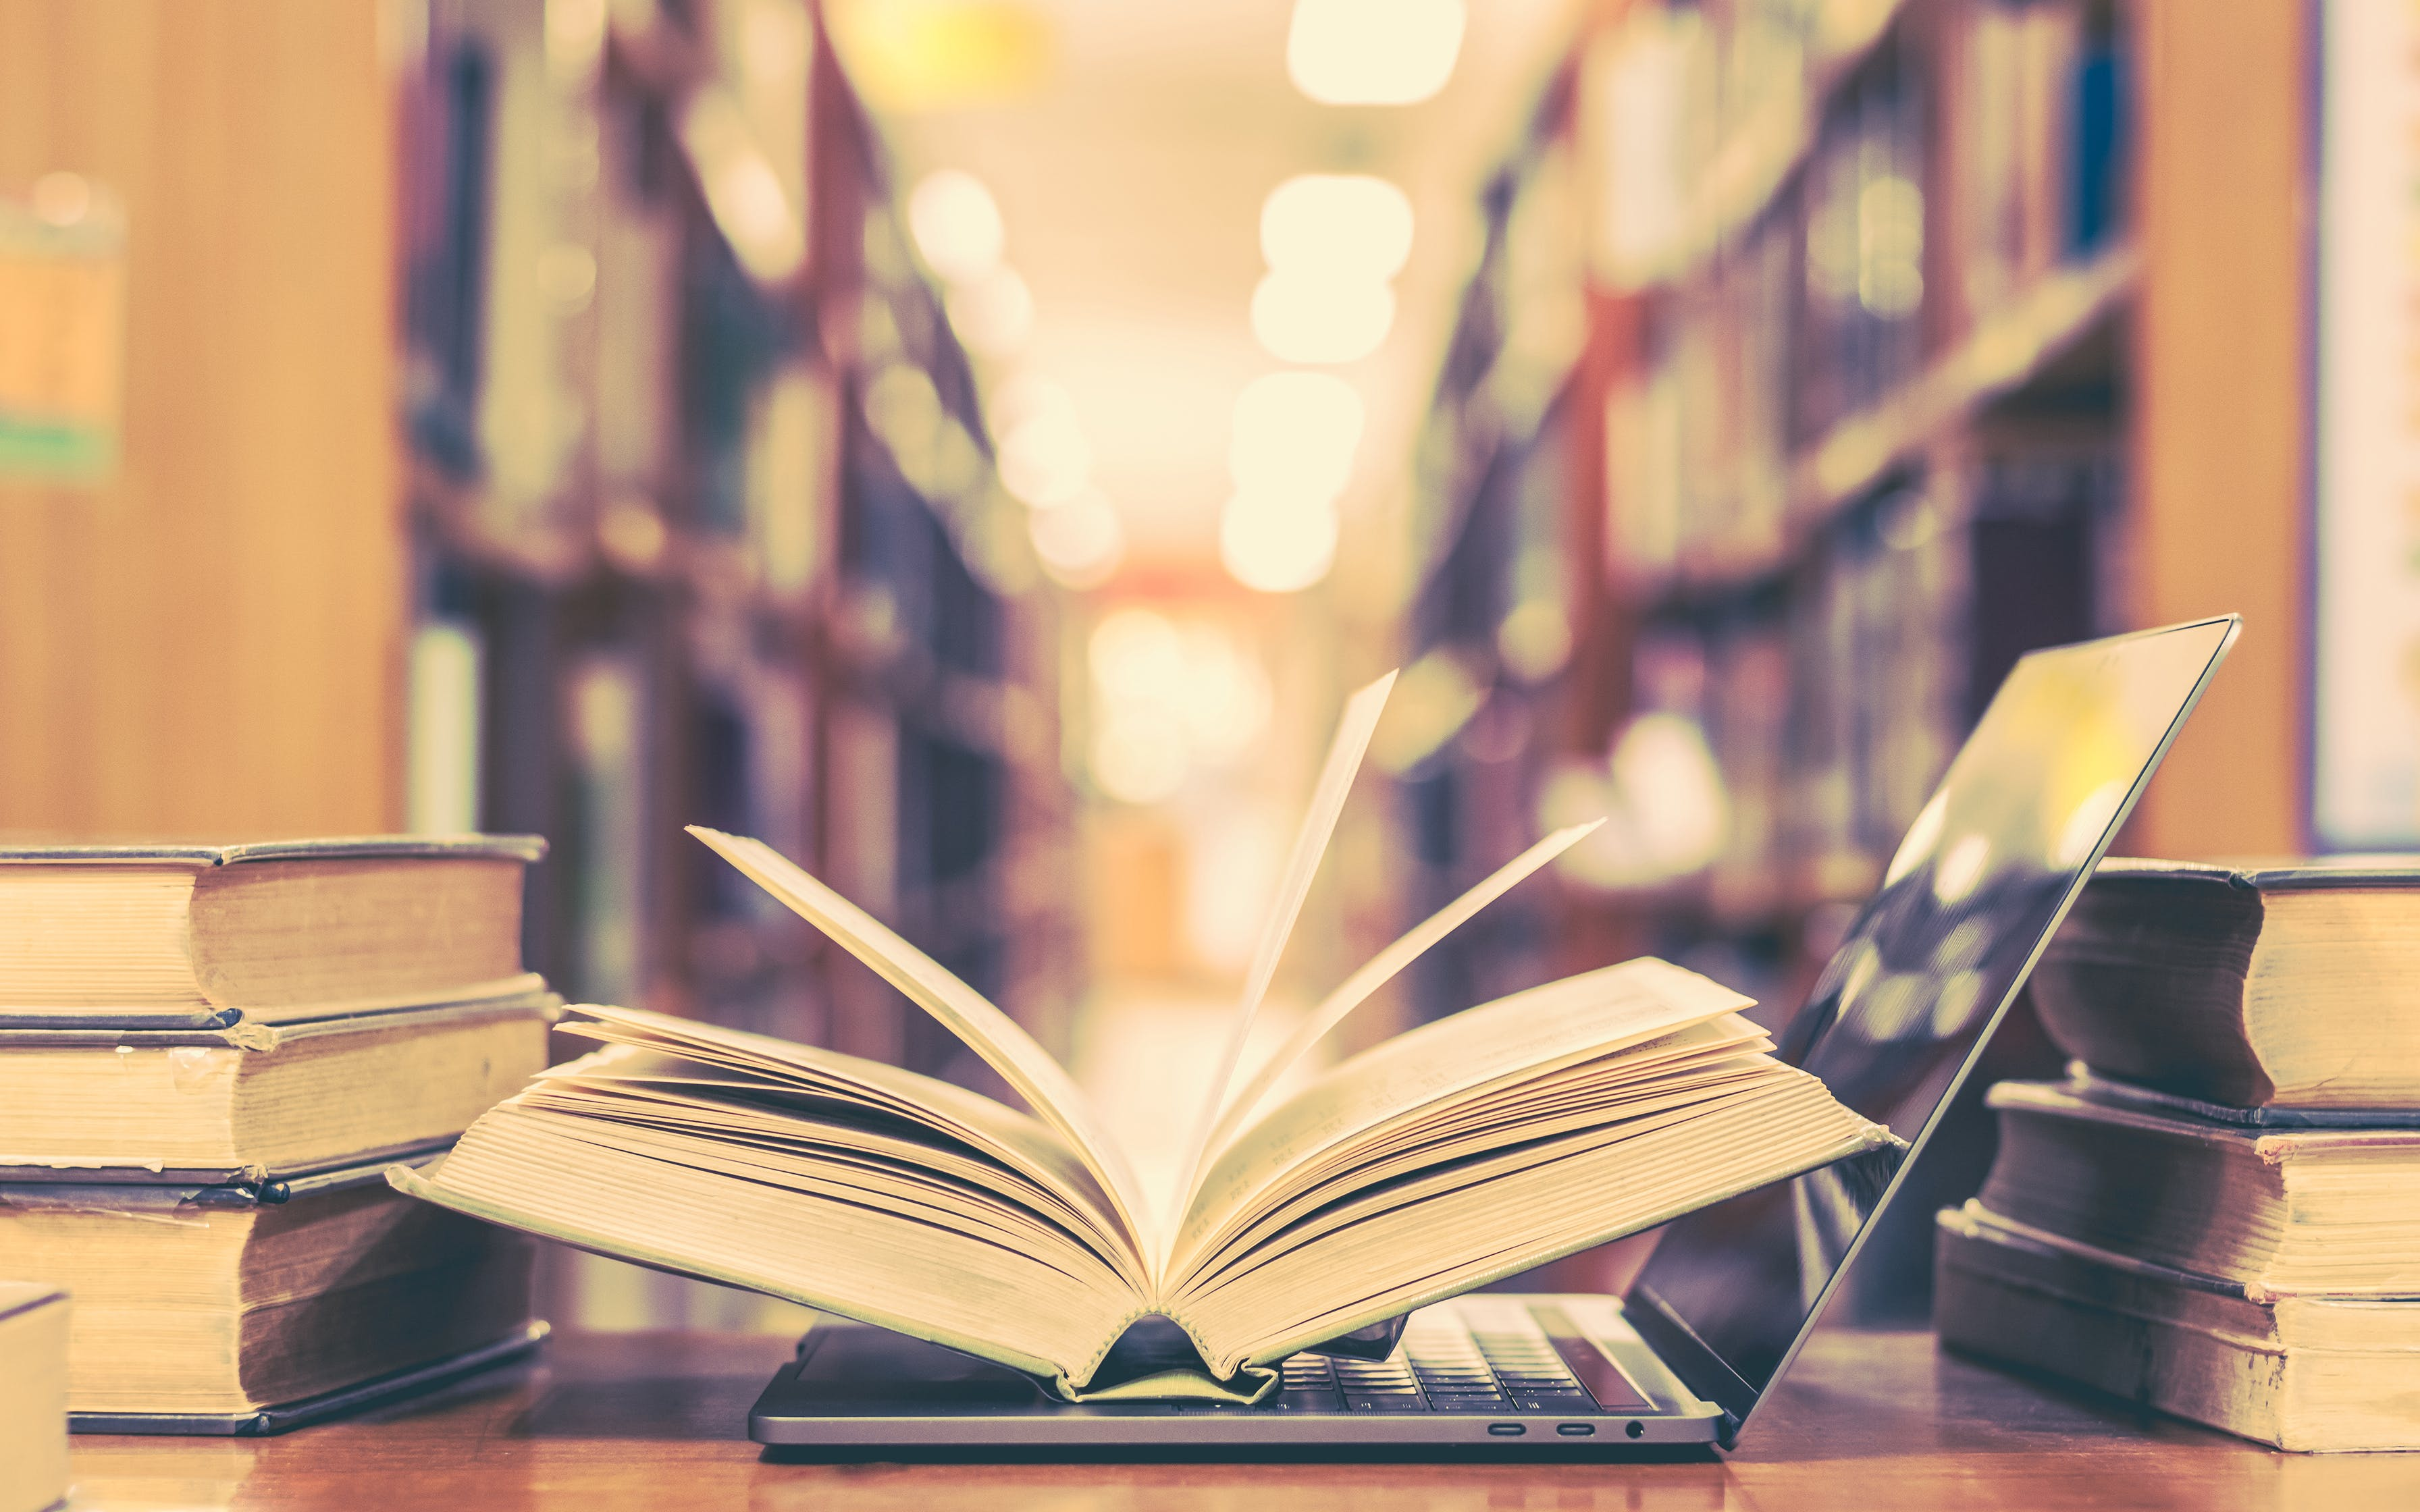 Book and computer technology in library